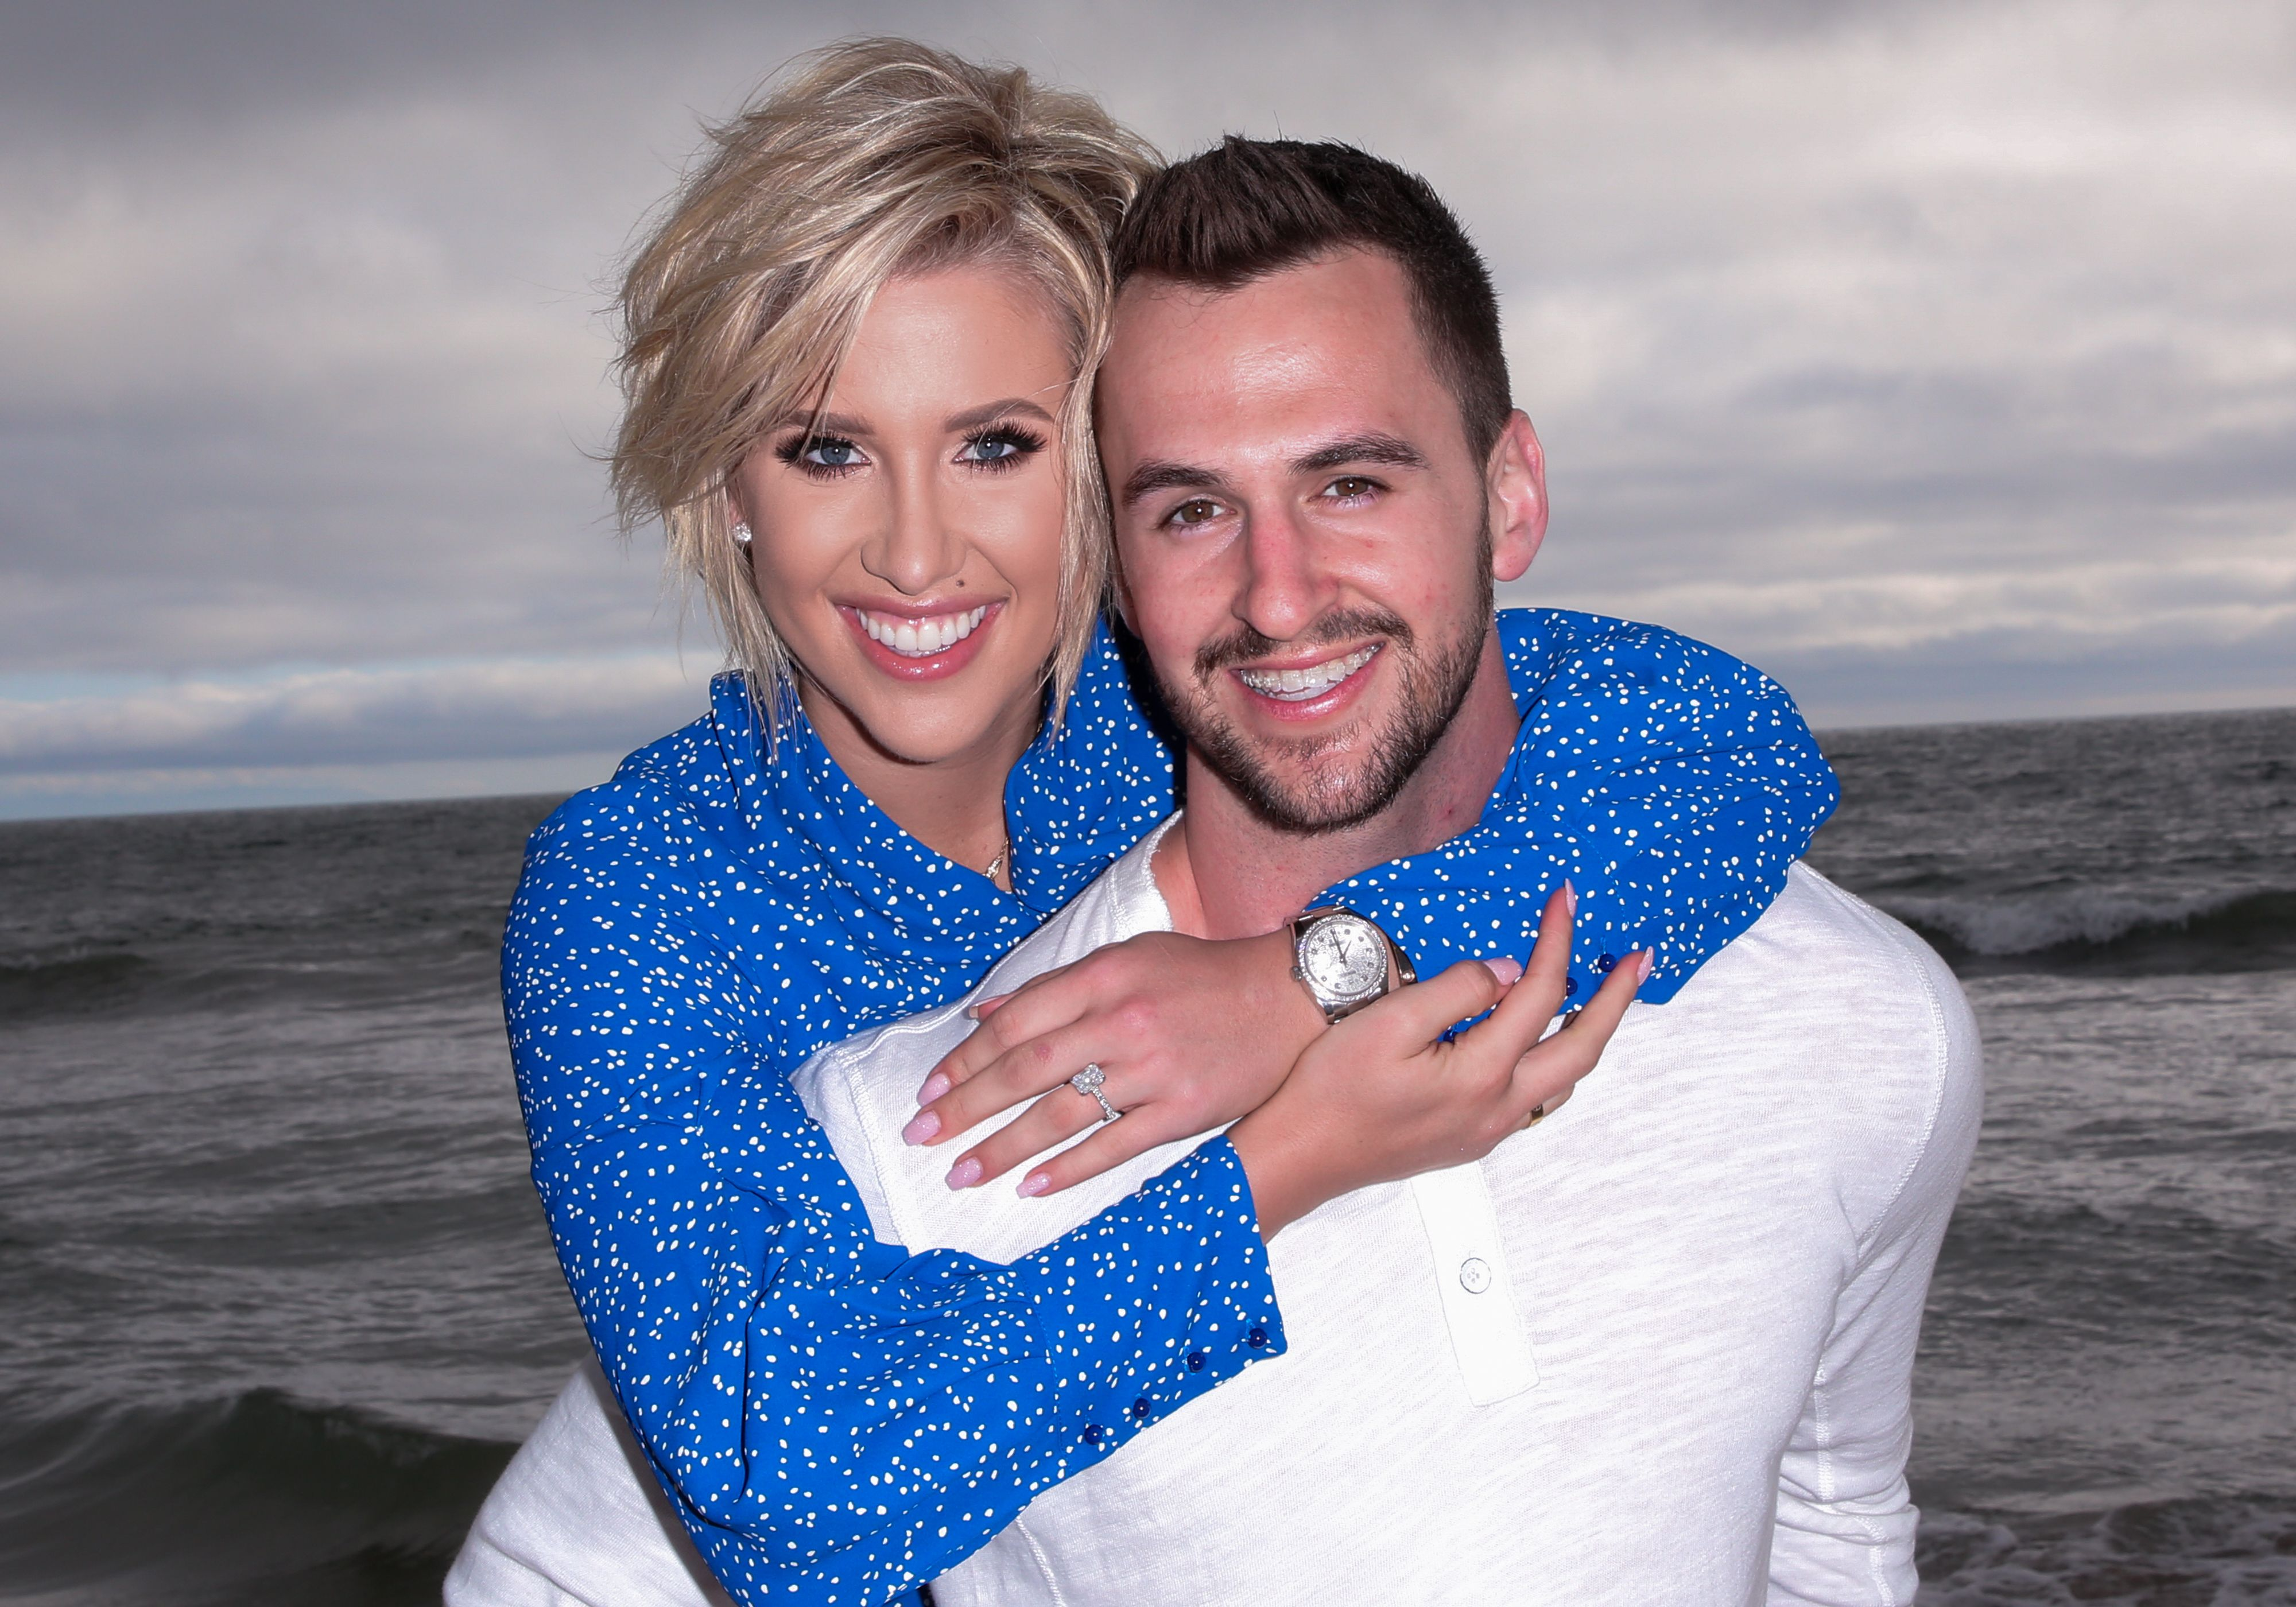 Savannah Chrisley and Nic Kerdiles smile for an engagement photo on March 27, 2019 in Santa Monica, California.   Source: Getty Images